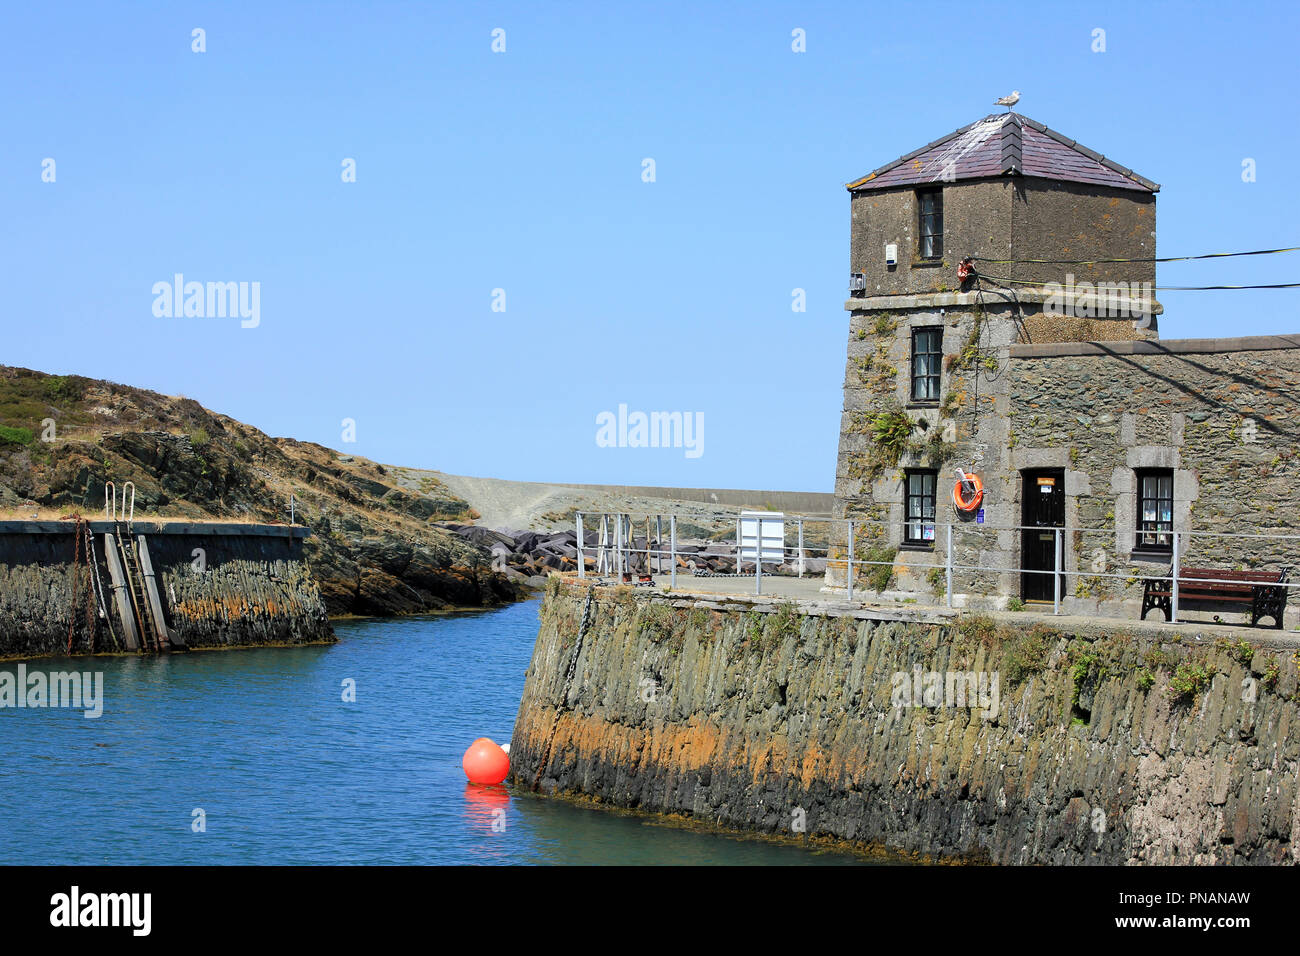 The Old Watch Tower / Lighthouse (Y Watiws), Amlwch Port, Anglesey - Stock Image